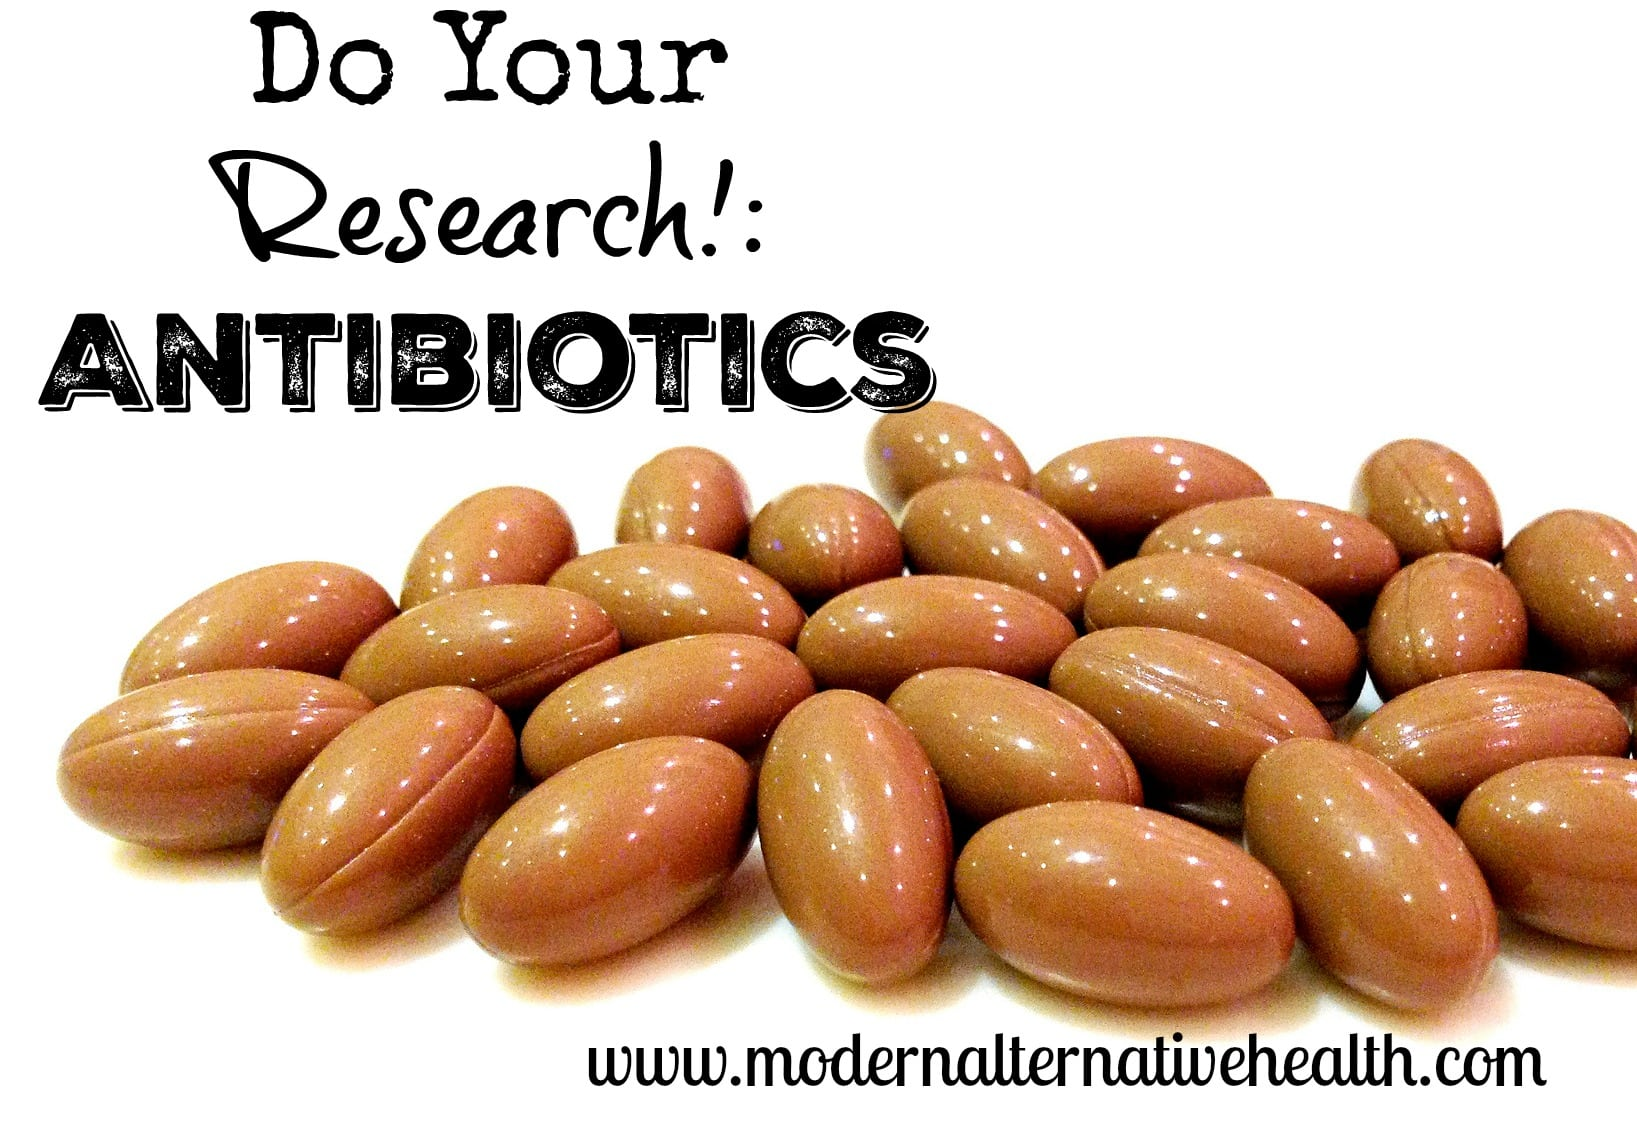 research antibiotics